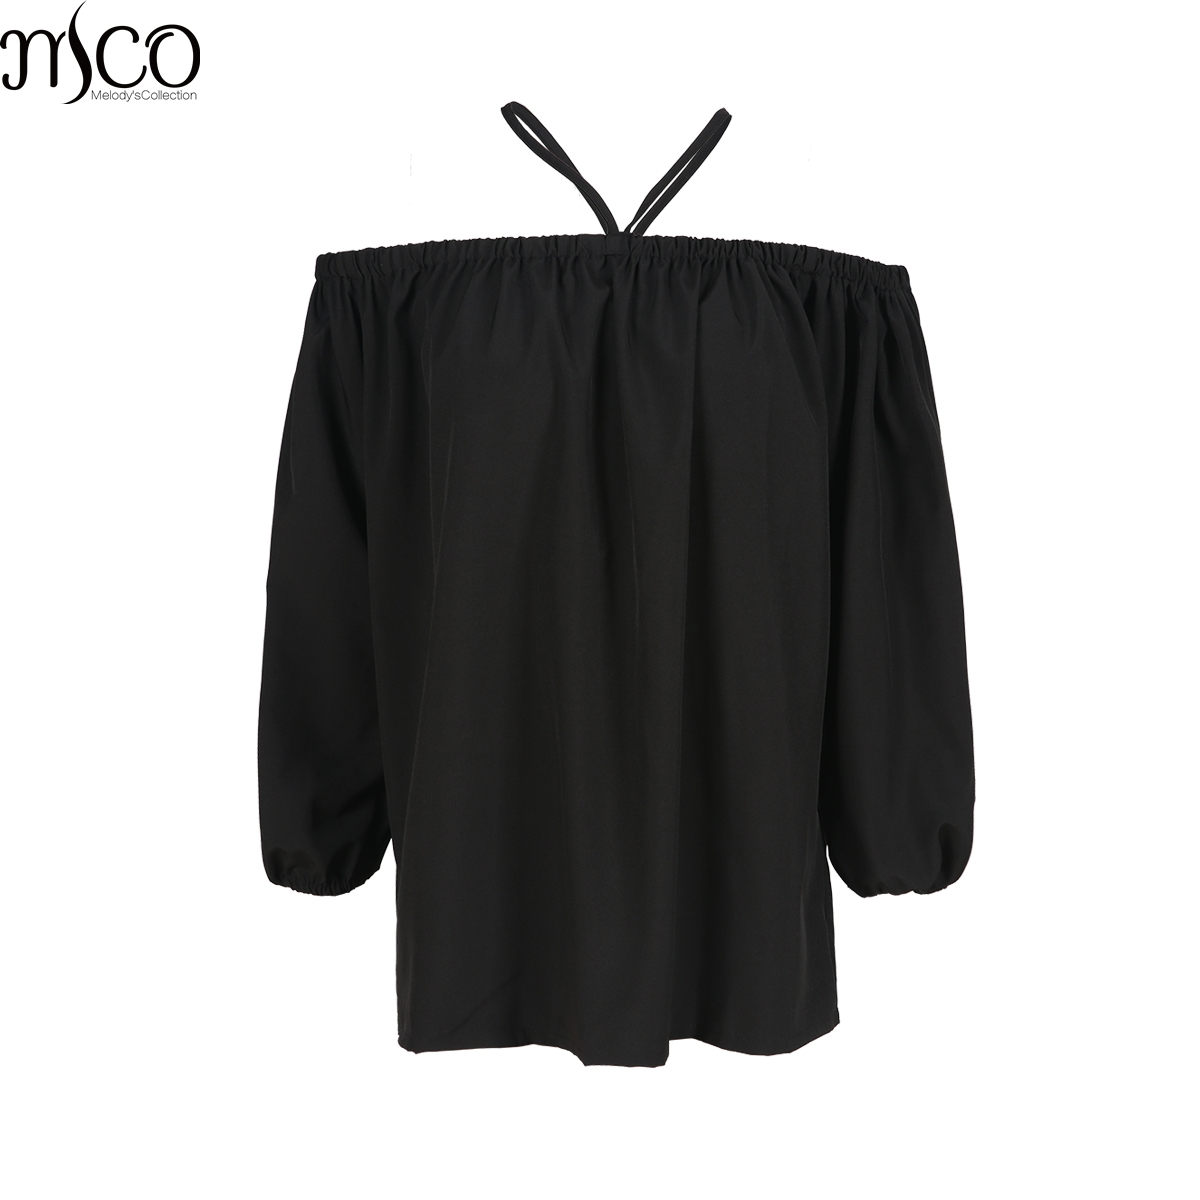 MCO 2017 Autumn Sexy Off Shoulder Plus Size Bardot Top Casual Oversized Halter Strap Shirt Basic Big Women Clothing 5xl 6xl 7xl